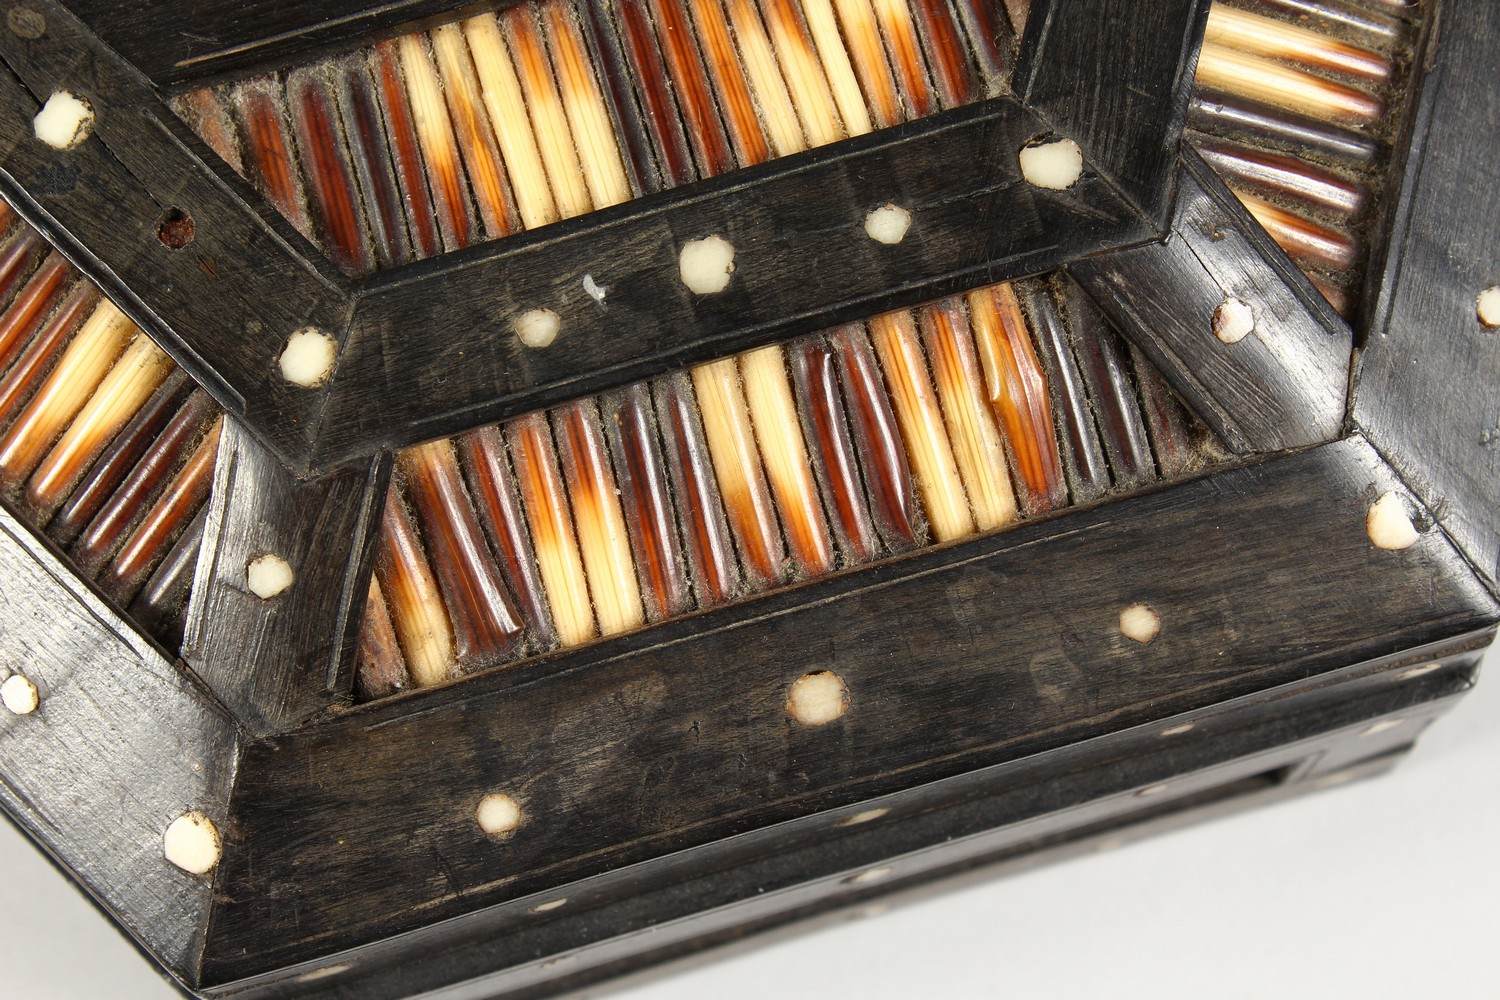 Lot 1483 - AN INDIAN ROSEWOOD AND PORCUPINE HEXAGONAL BOX AND COVER with carrying handle. 9ins.